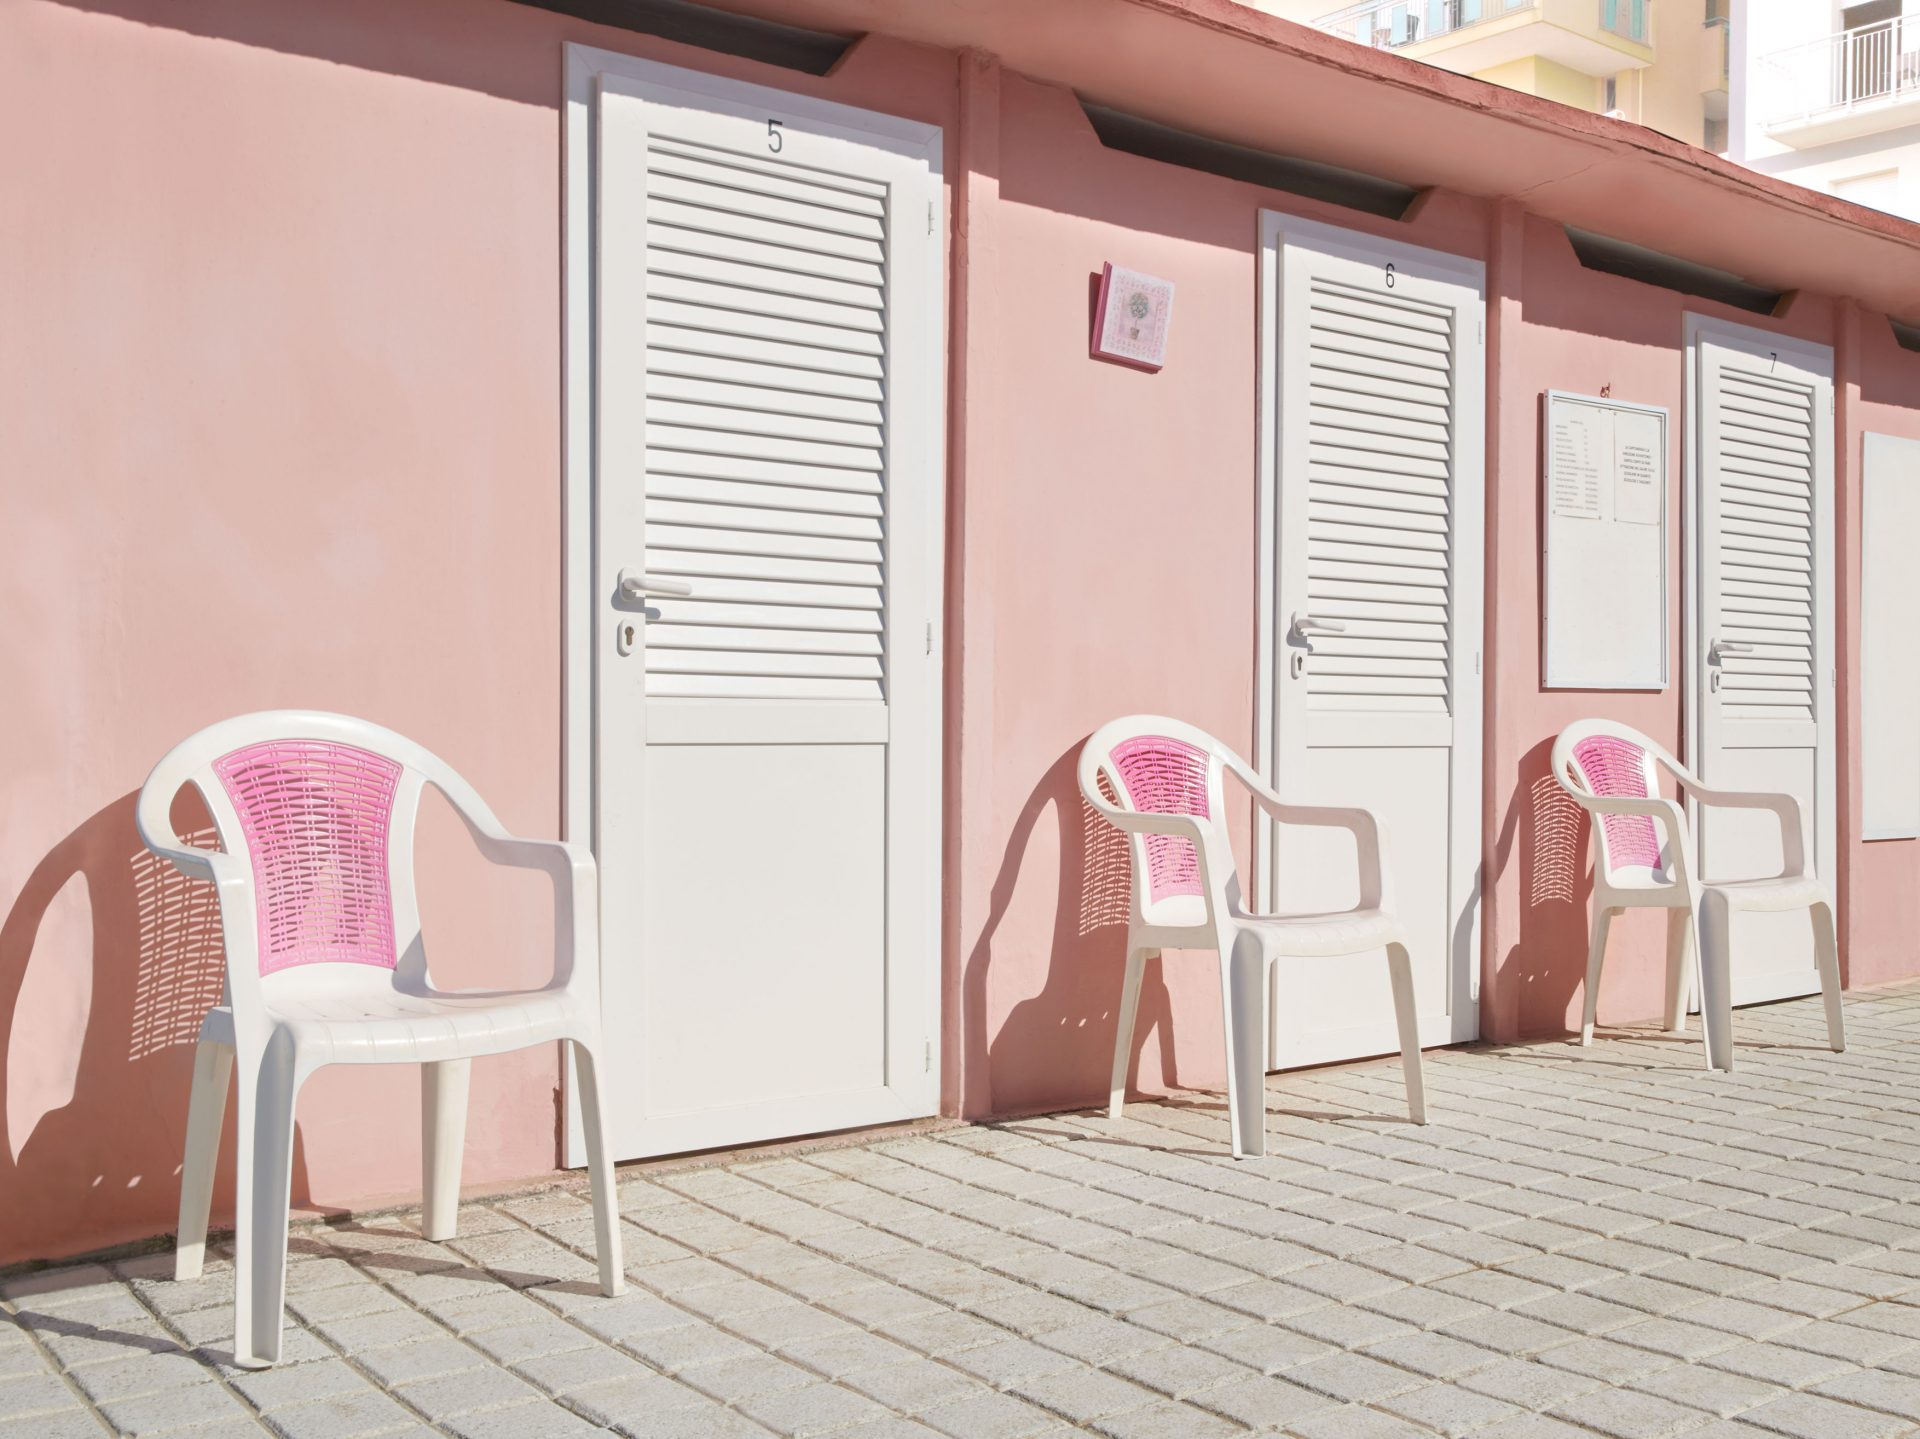 Shaw & Shaw -pink plastic chairs pink wall – Shaw and Shaw Advertising photographers photographer photography